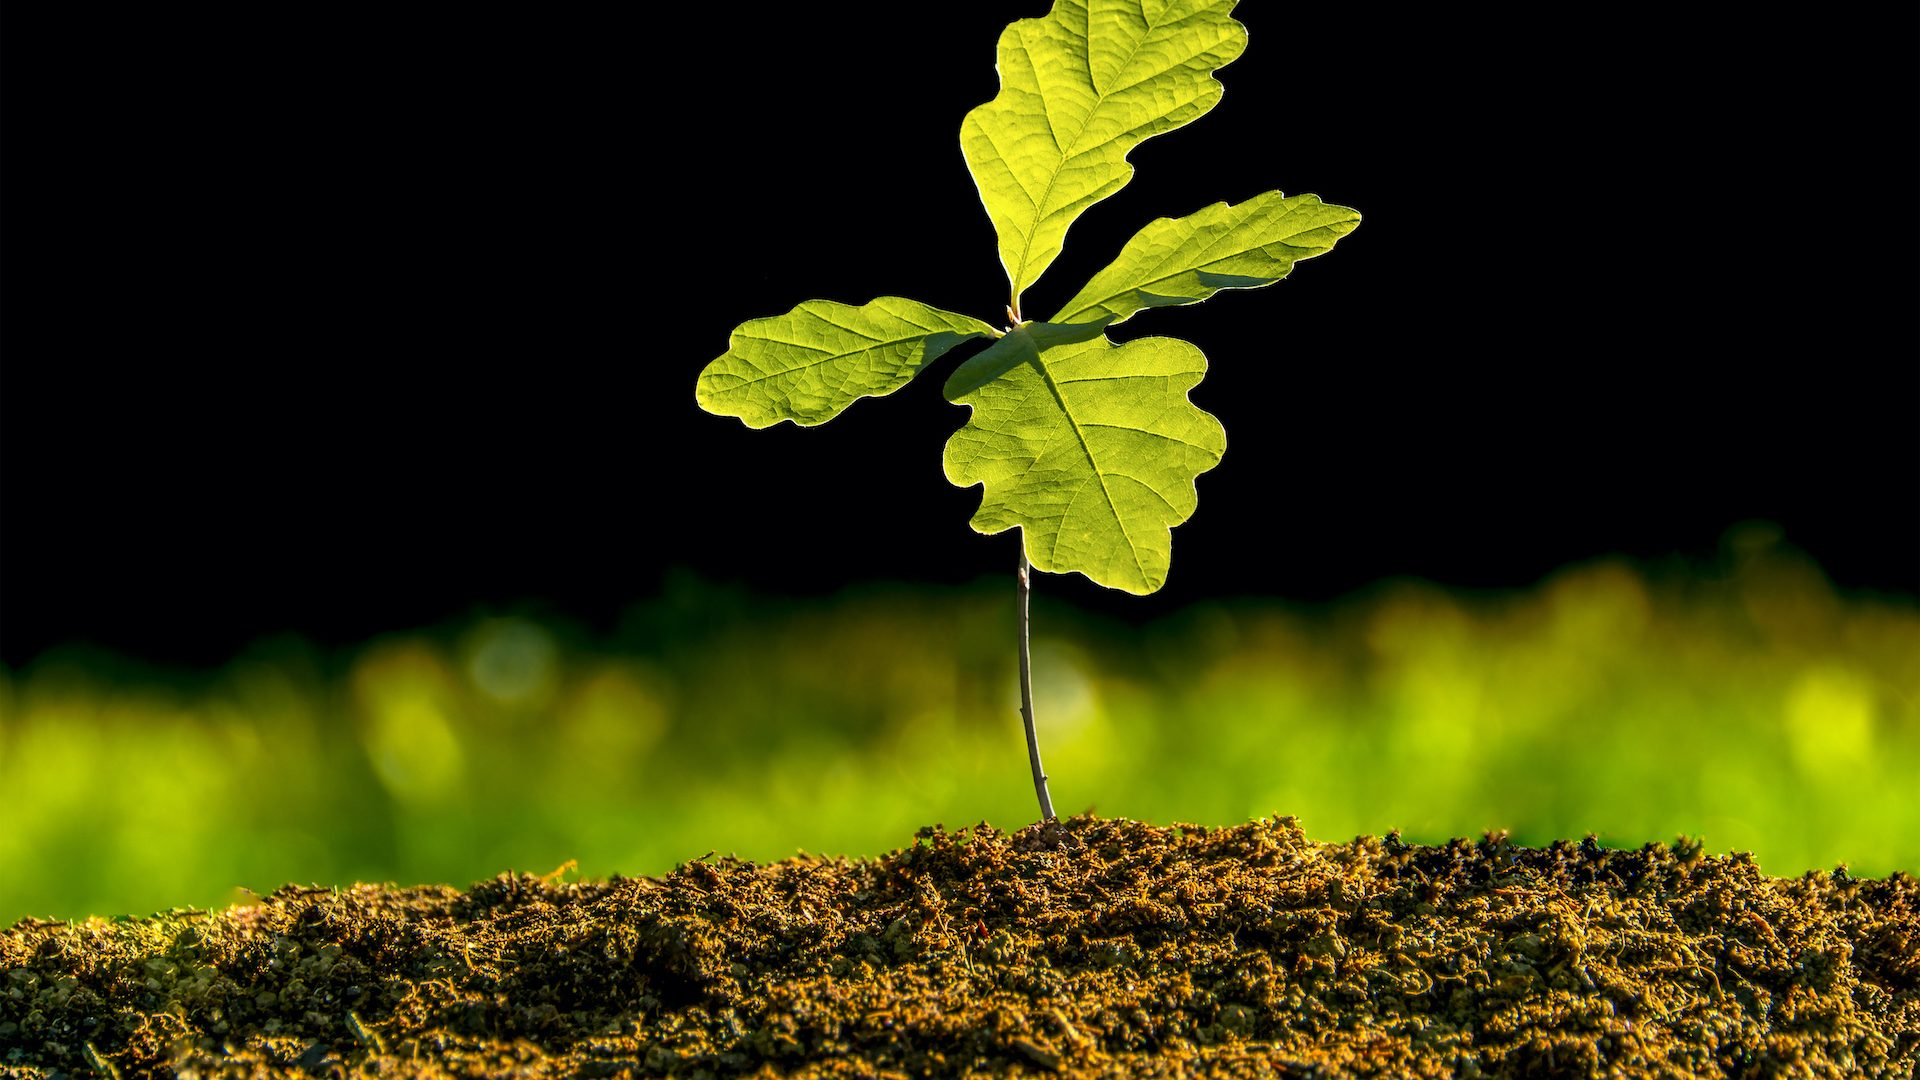 Small oak plant in the garden. Tree oak planted in the soil substrate. Seedlings or plants illuminated by the side light. Highly lighted oak leaves with dark background and green grass.